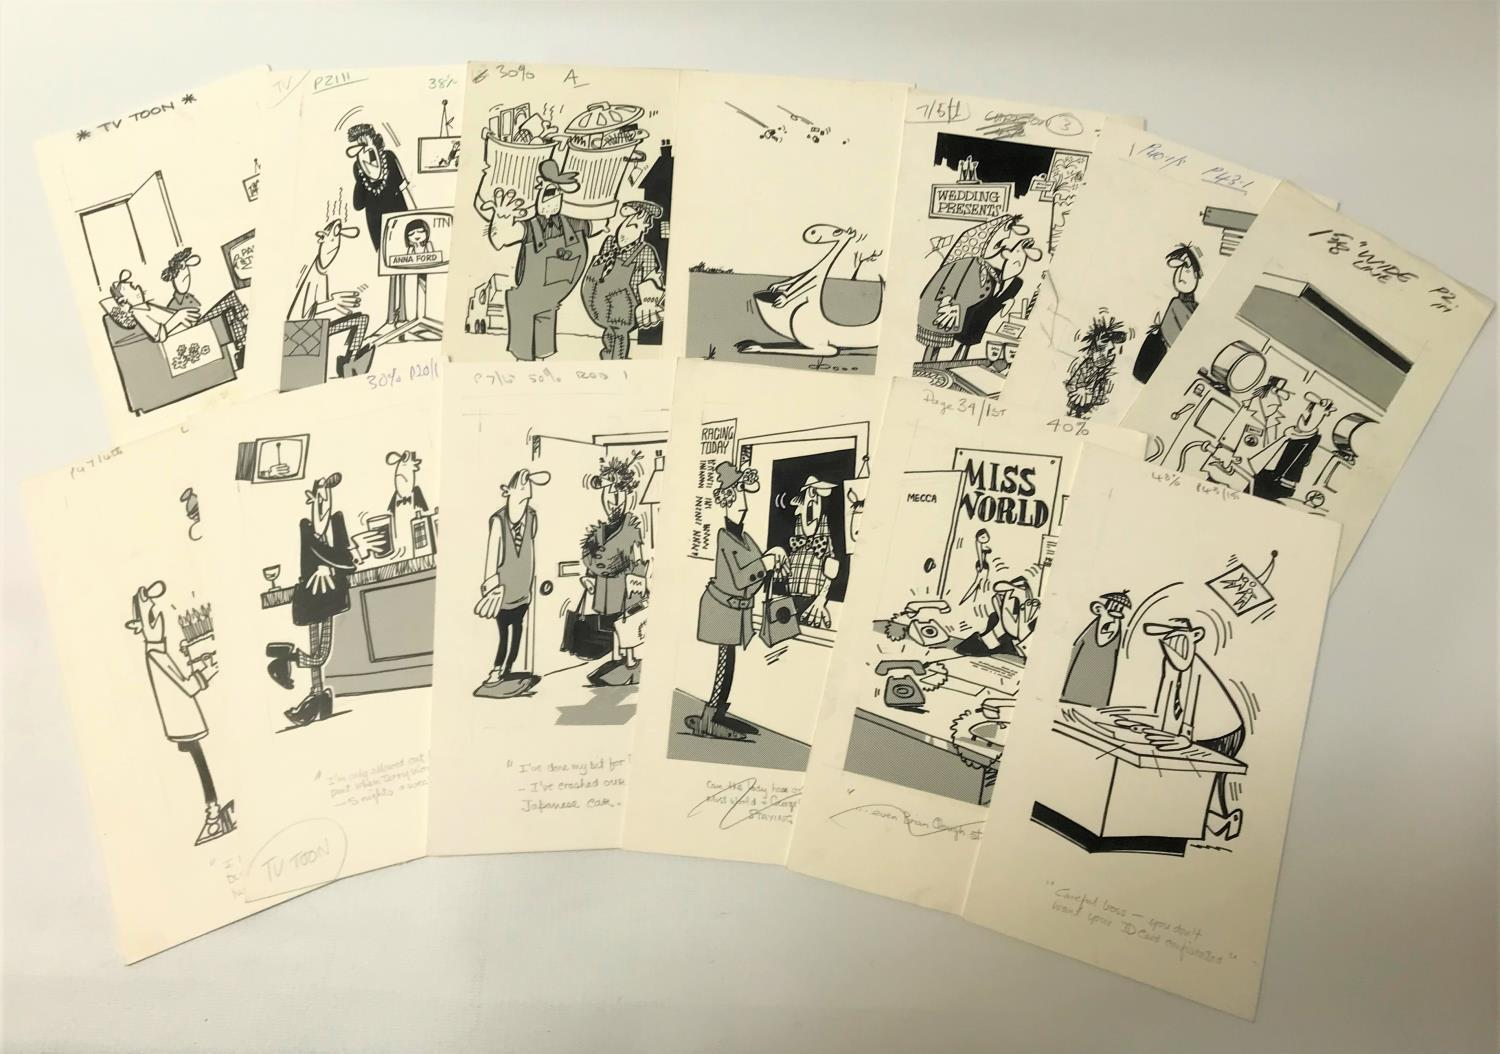 Lot 275 - ROD MCLEOD (Scottish cartoonist) fifteen ink drawings, late 1970/early 1980s, mixed humorous